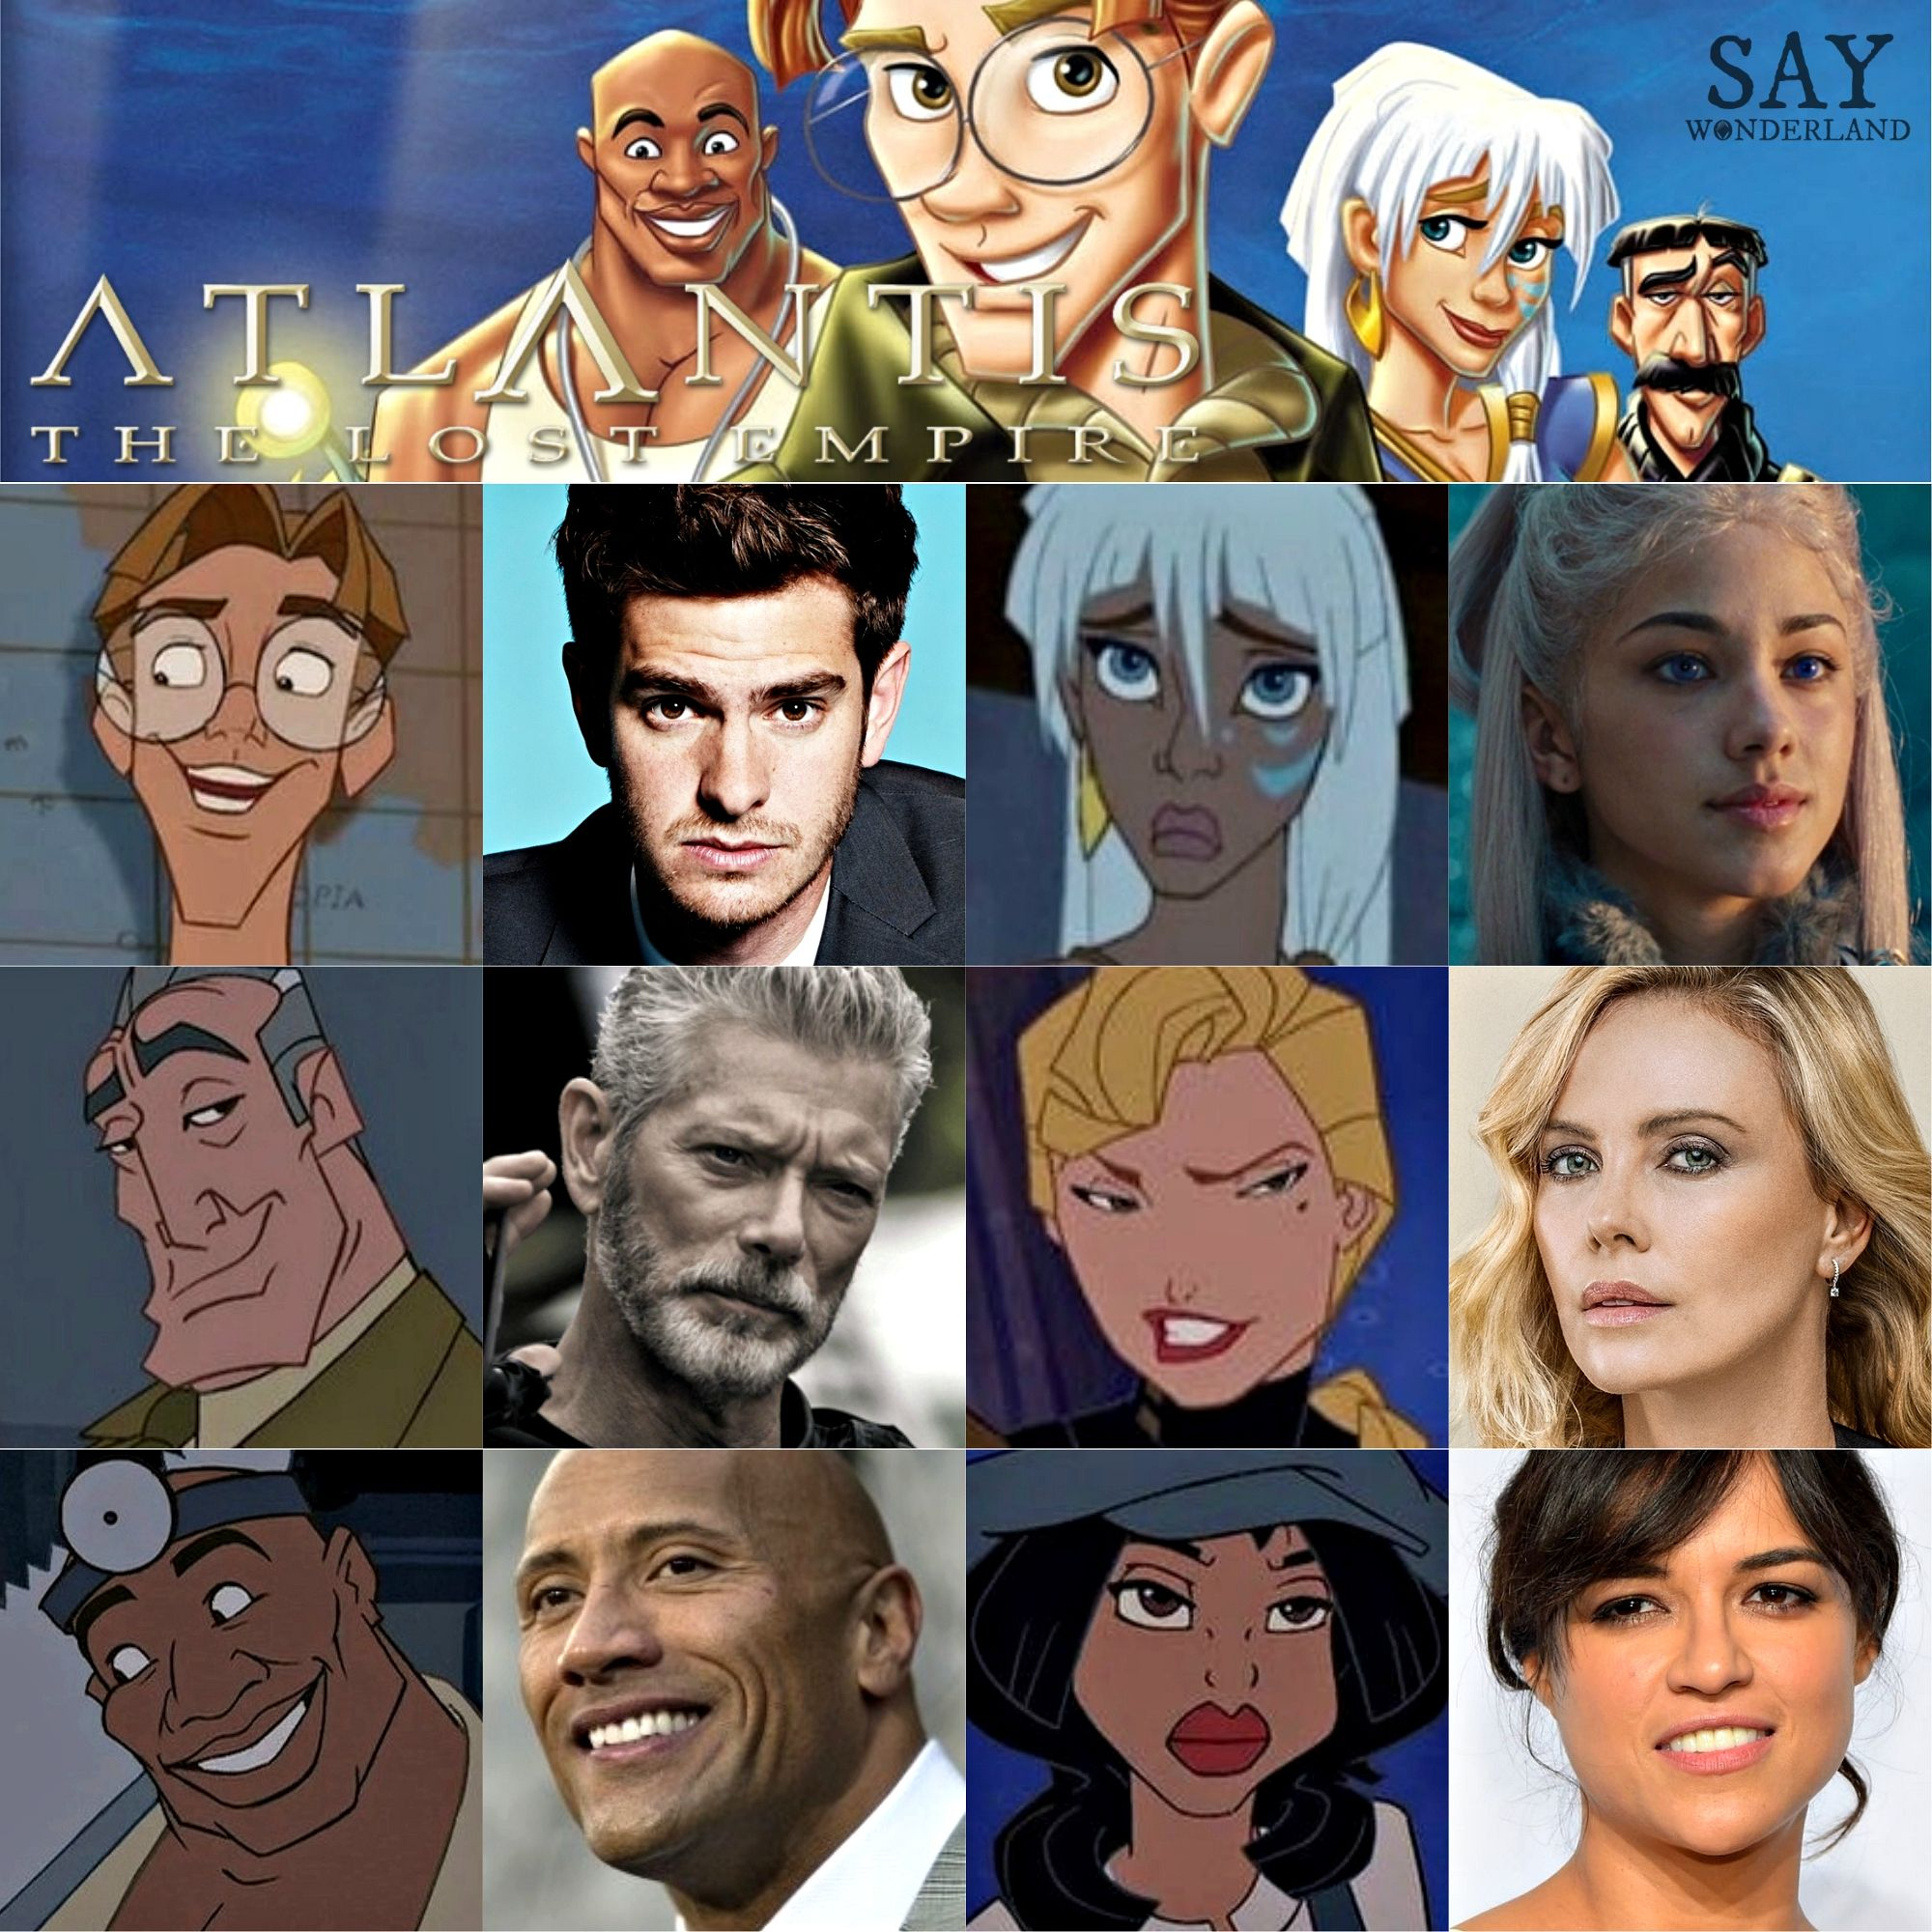 95 Kenny Jones On Twitter But Why Doesn T Disney Do A Live Action